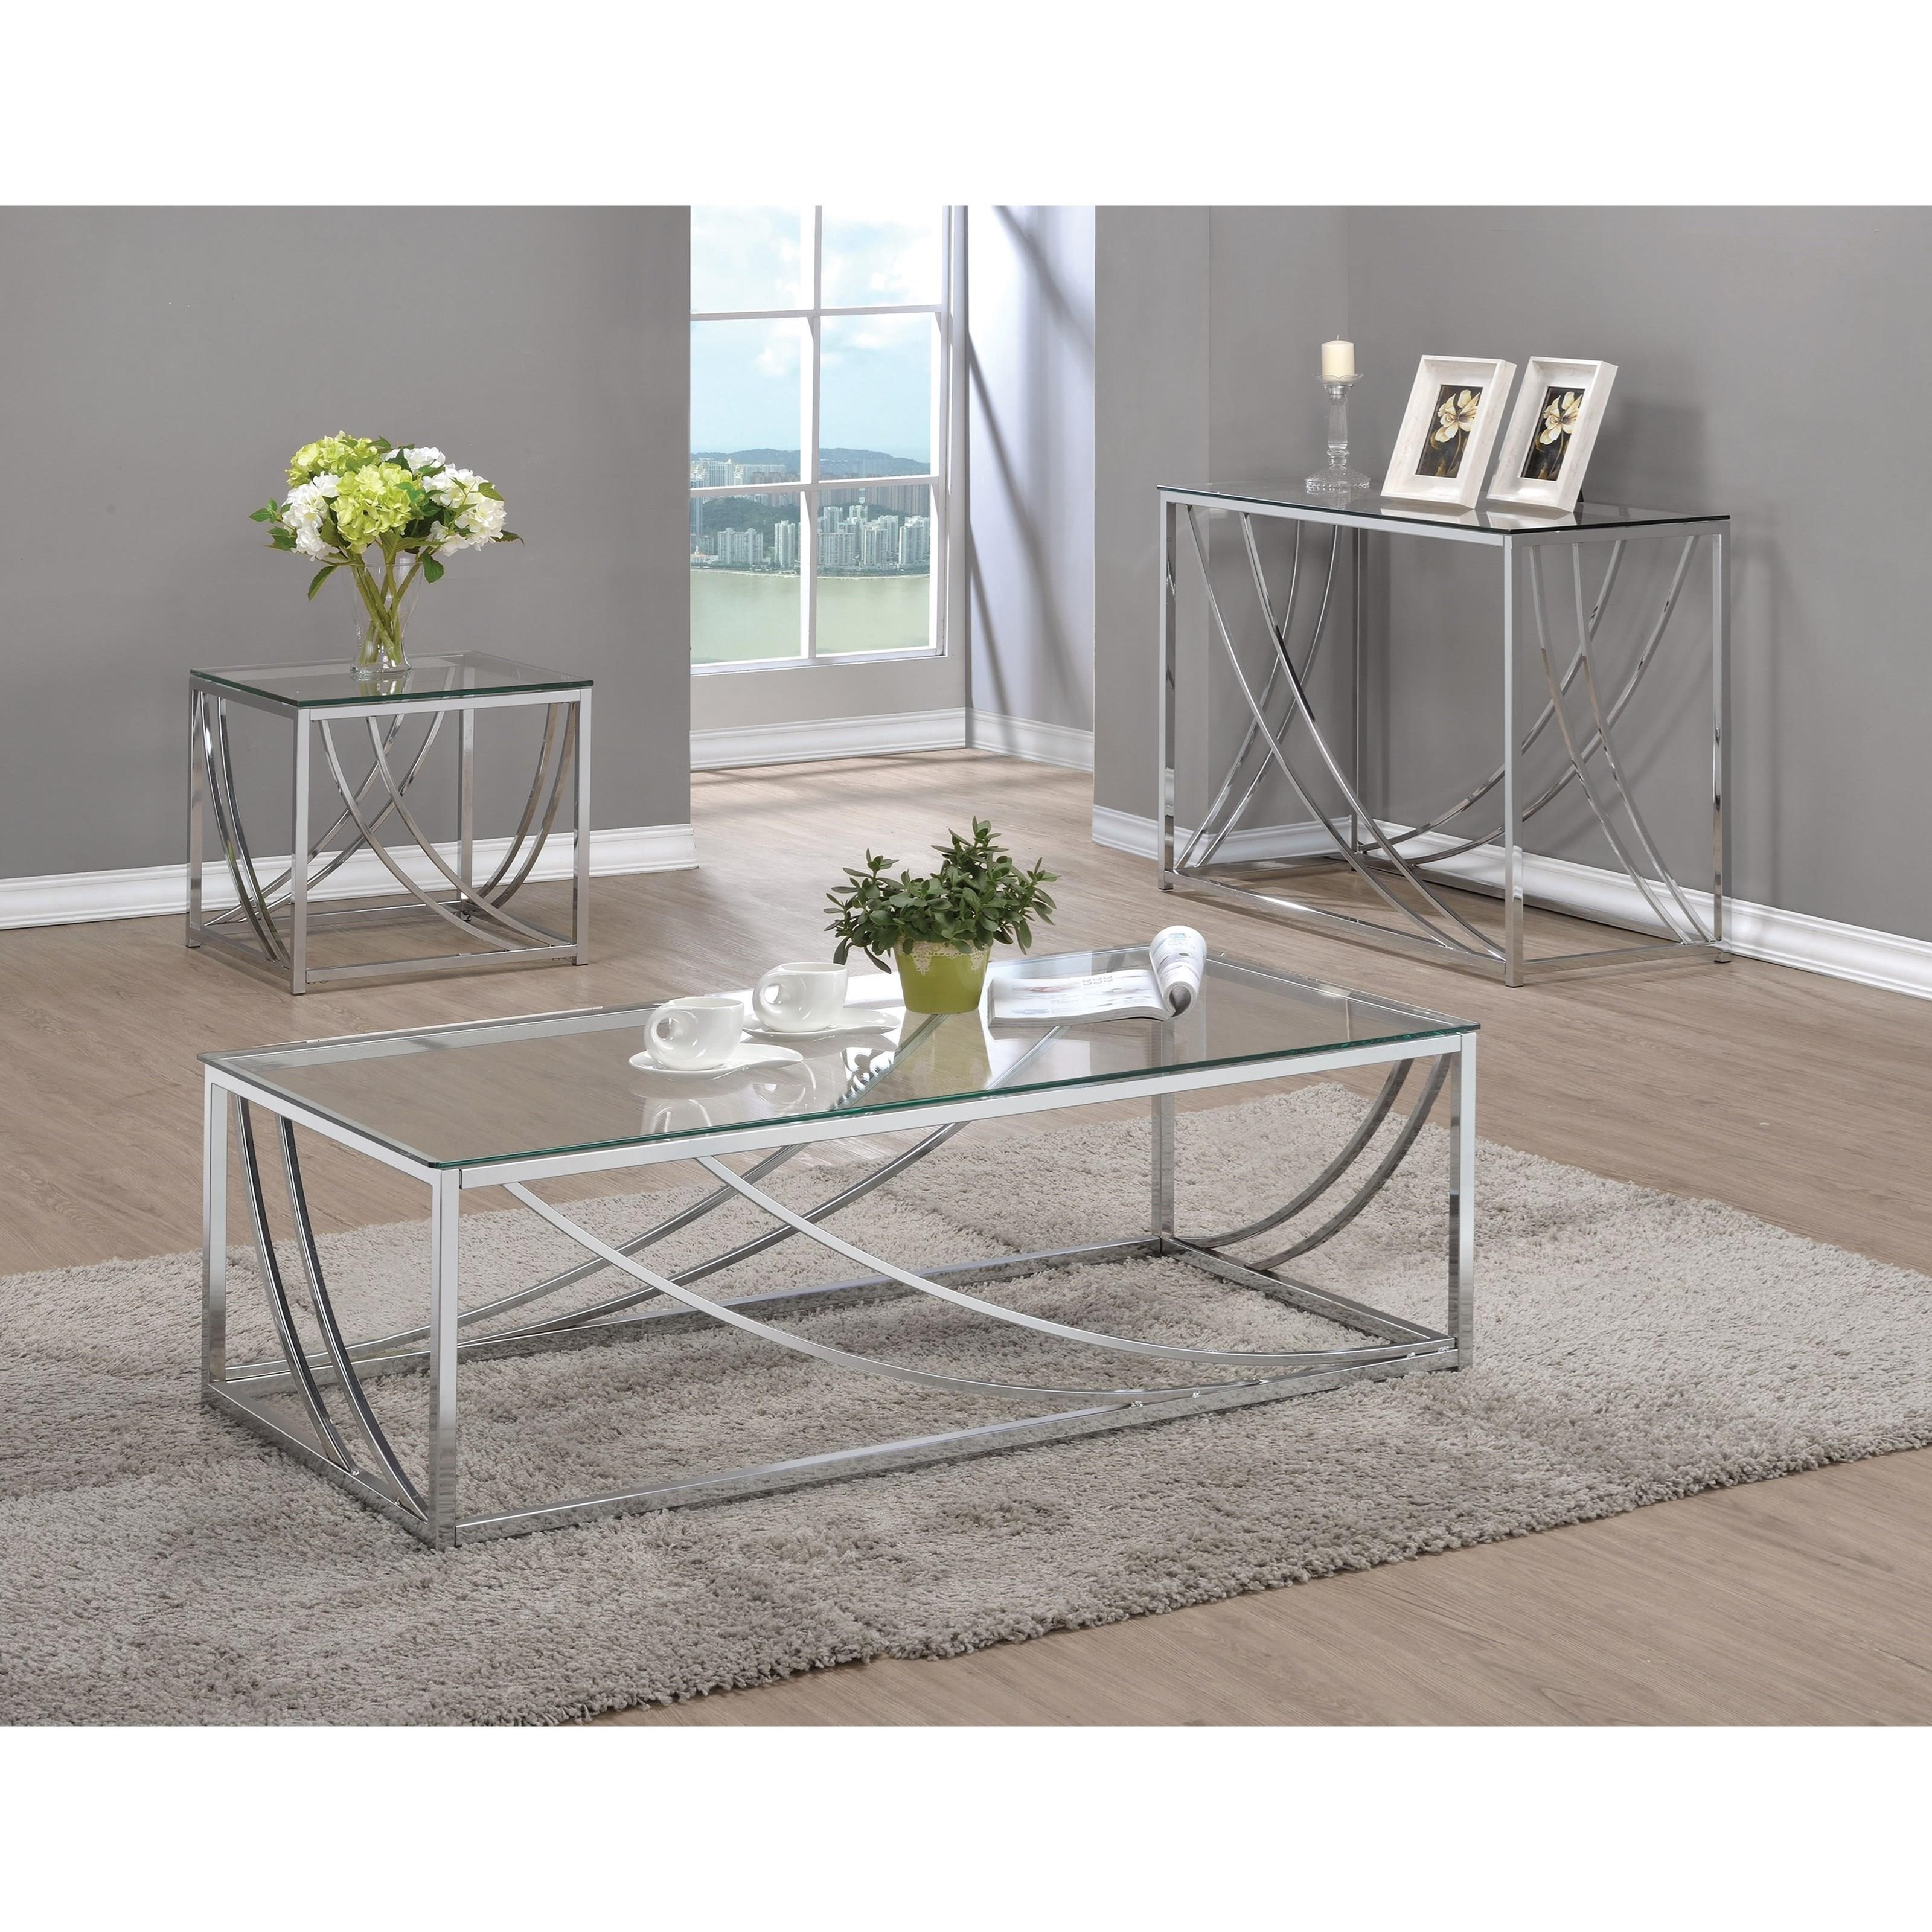 720490 Modern Glass Top End Table Quality Furniture At